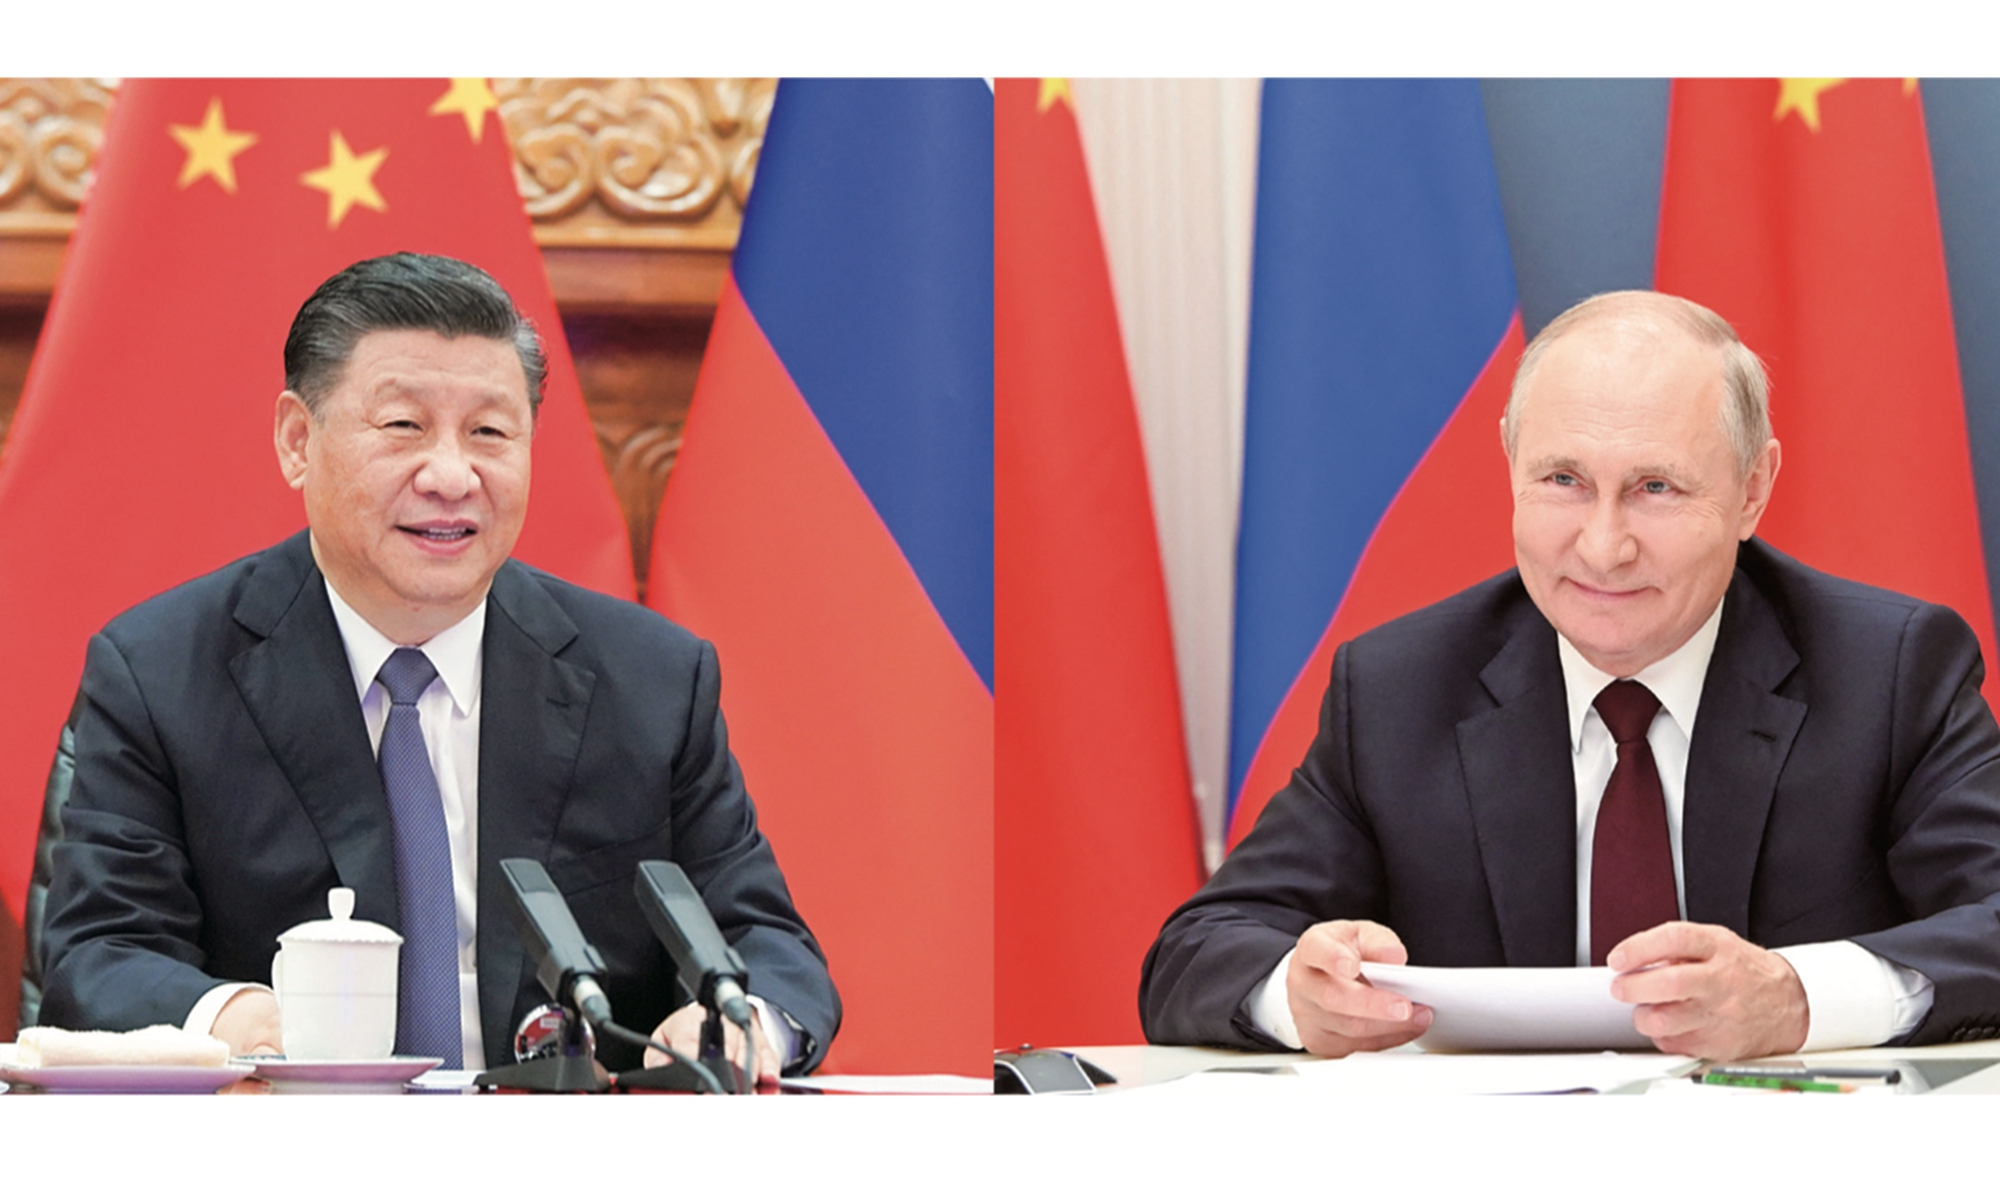 Chinese President Xi Jinping and Russian President Vladimir Putin hold talks via video link on Monday. The two leaders issued a joint statement during the event, officially deciding to extend the China-Russia Treaty of Good-Neighborliness and Friendly Cooperation. Photos: Xinhua, AFP